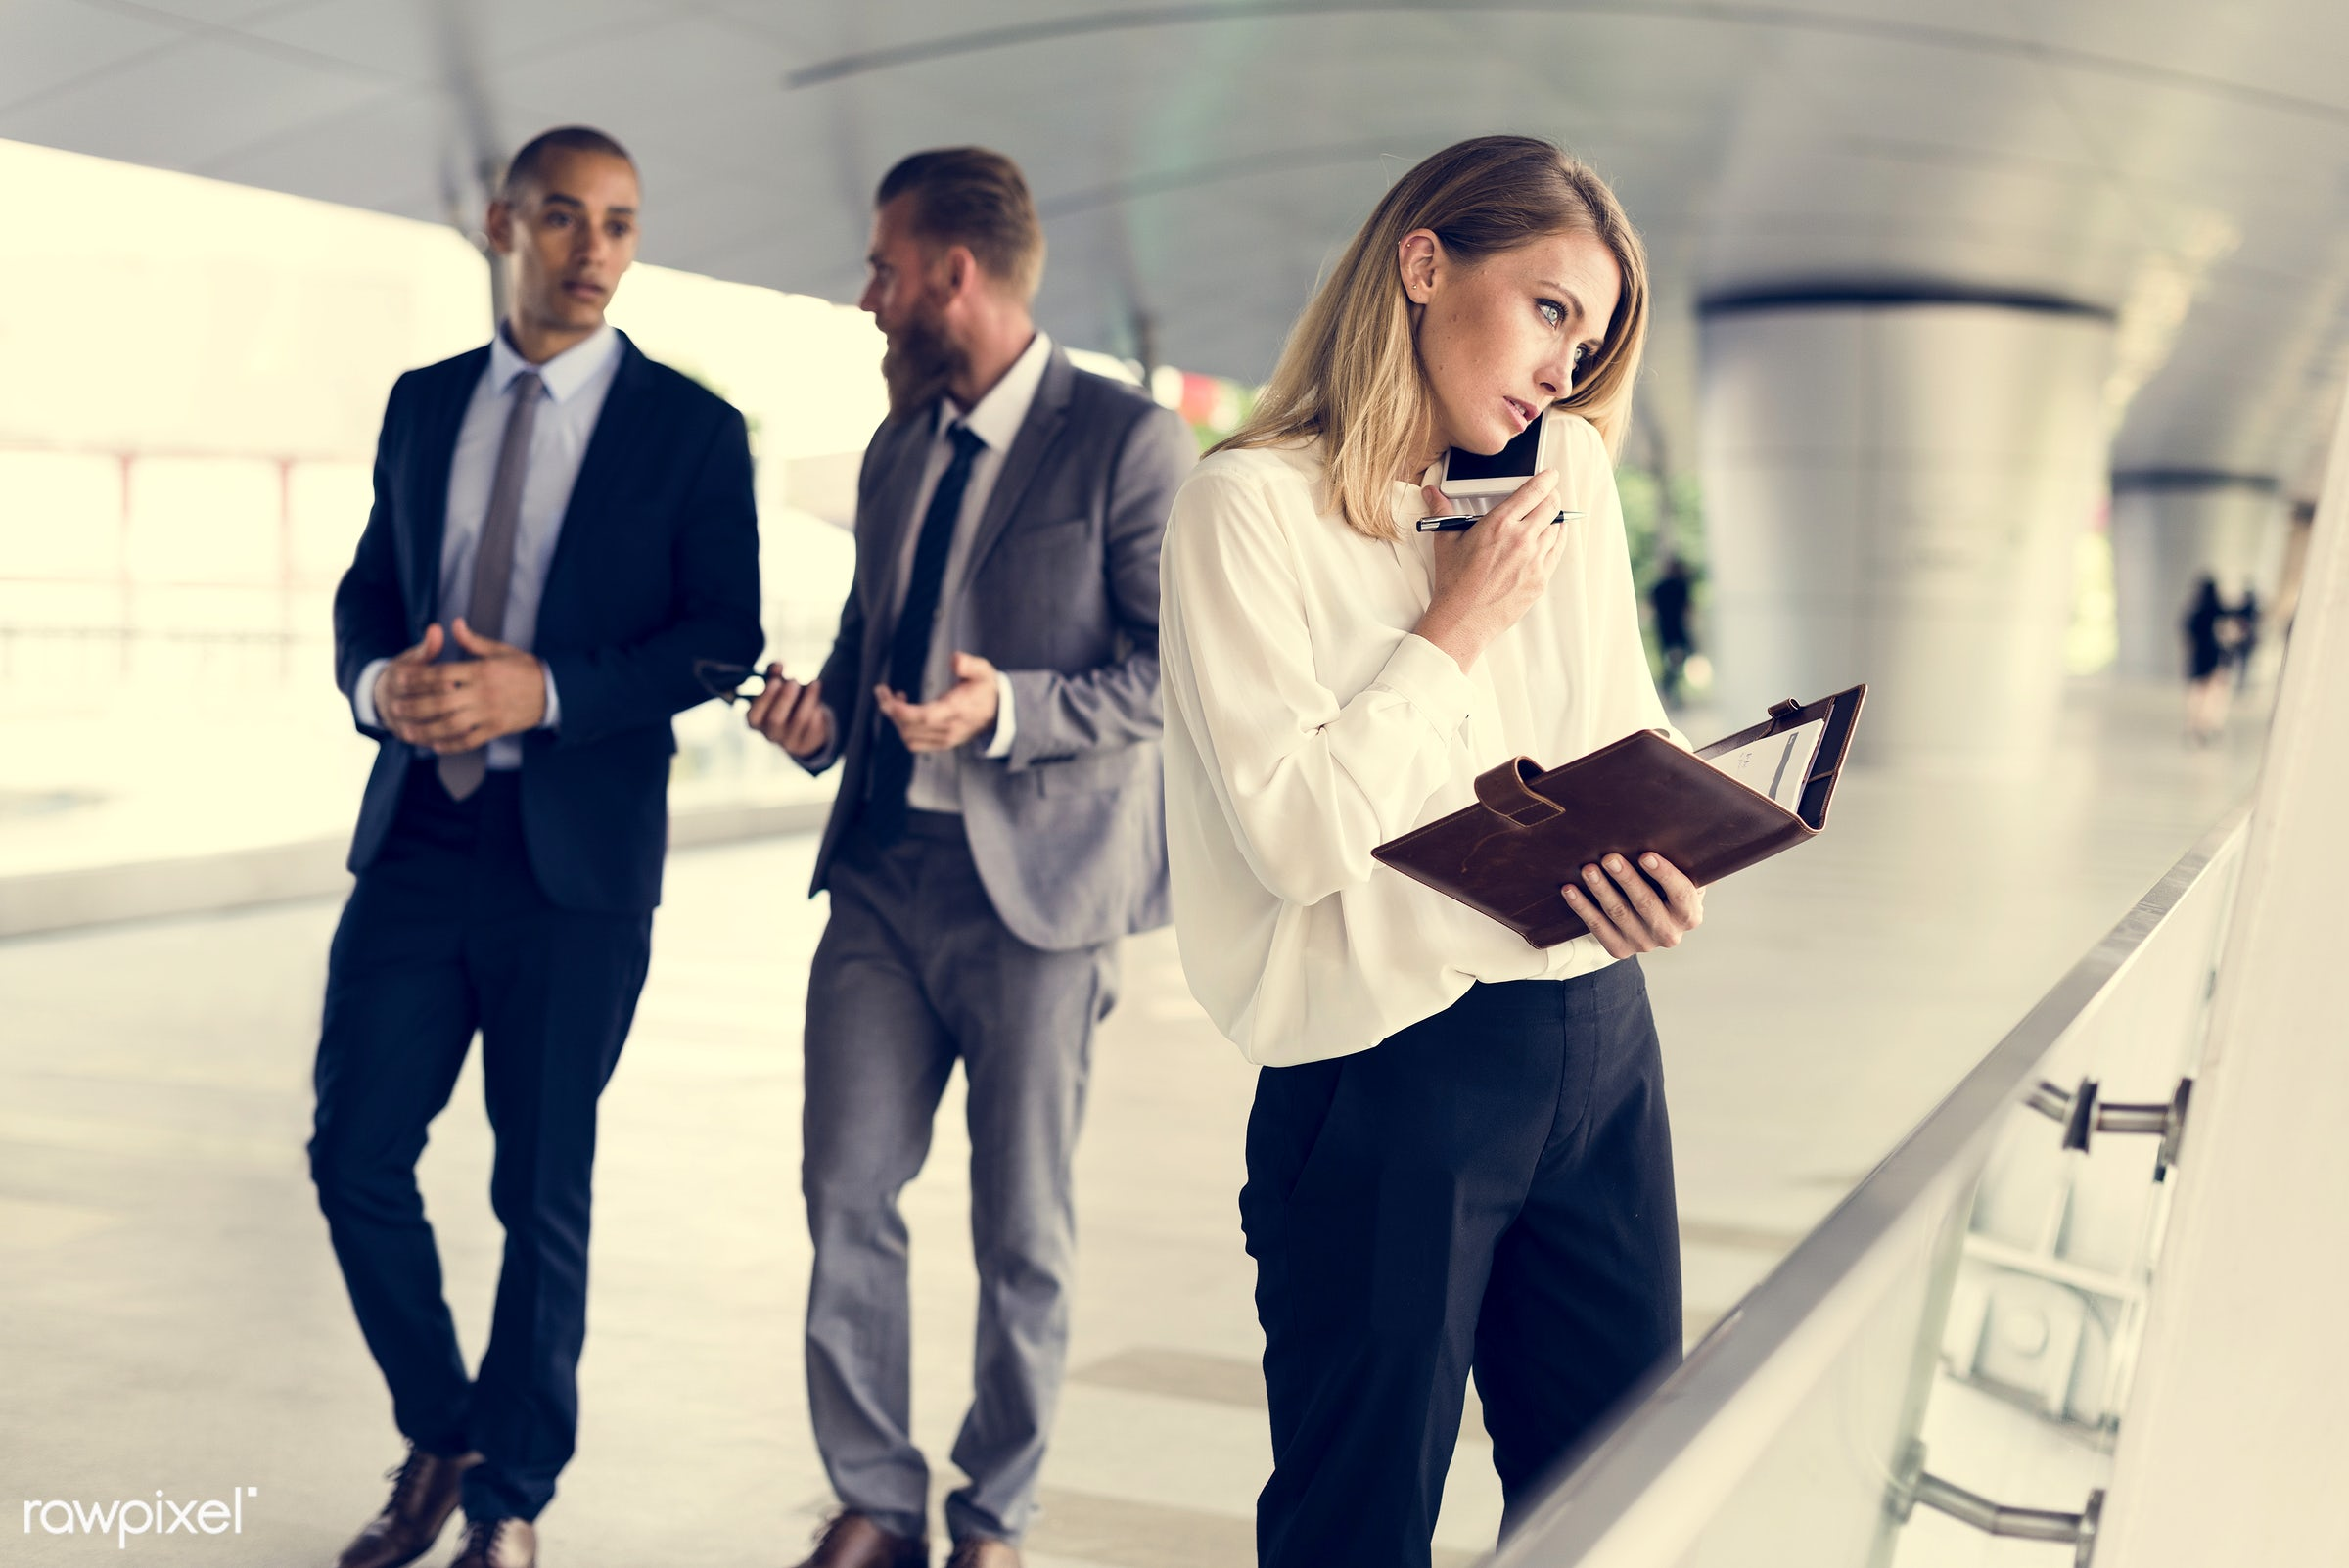 expression, update, face, person, phone, suit and tie, white collar worker, busy, indoors, calling, customer, people,...